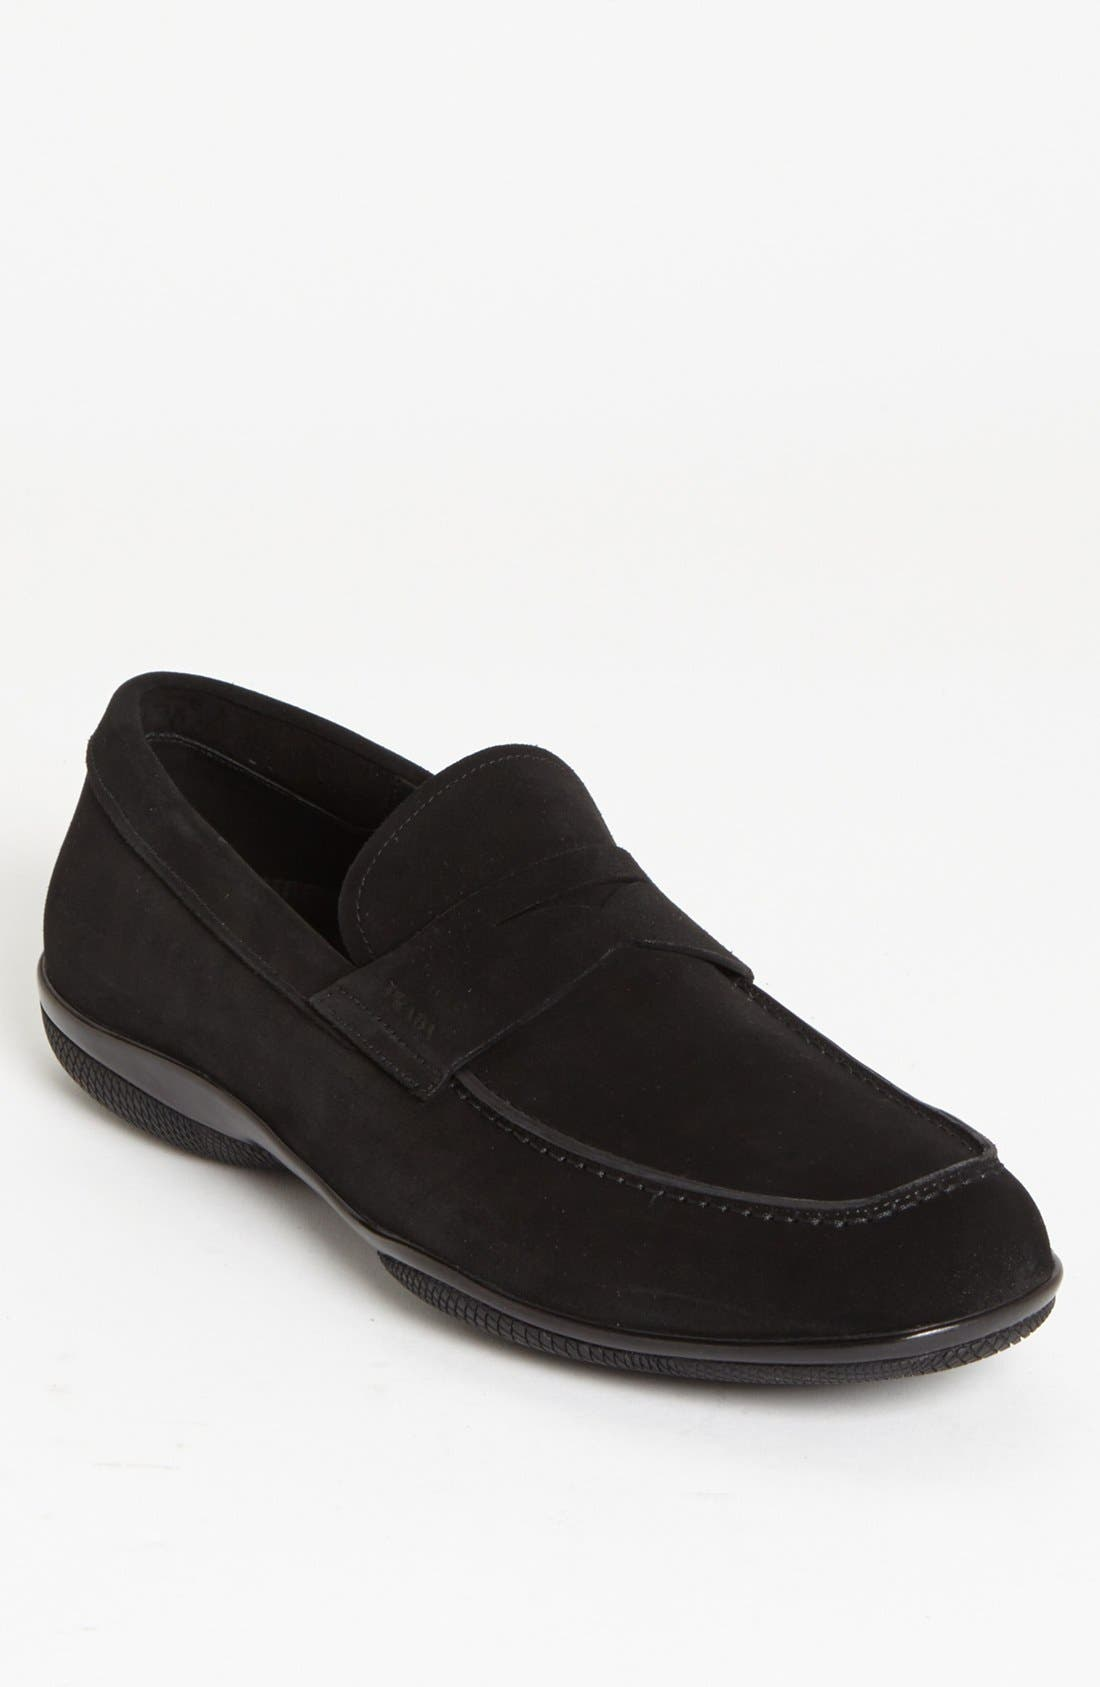 Alternate Image 1 Selected - Prada 'Toblac' Suede Penny Loafer